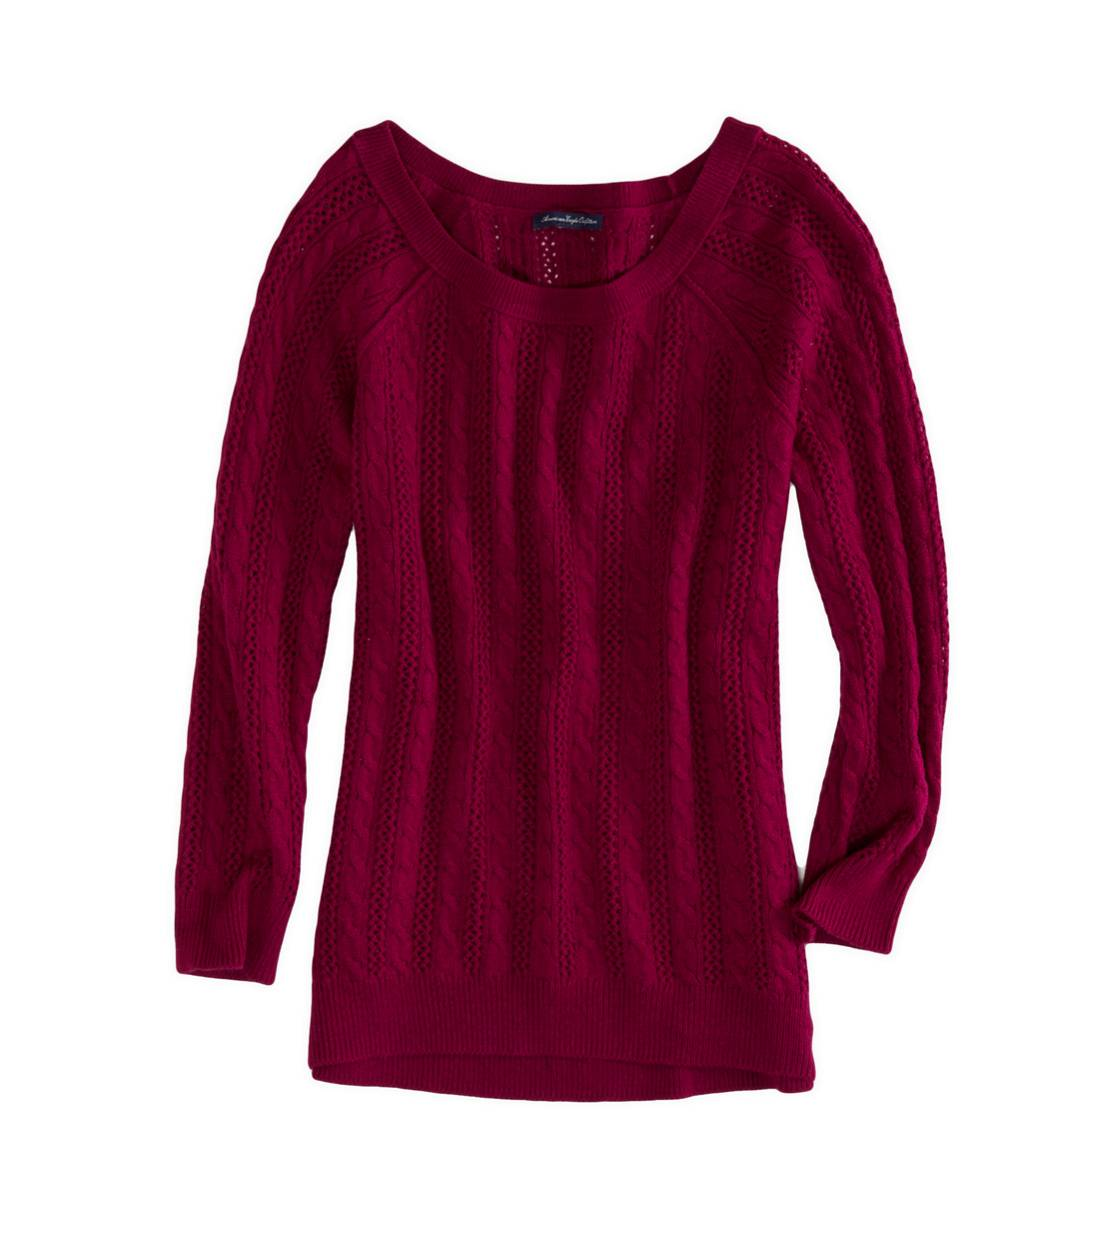 Berry Gem AEO Factory Cable Knit Crew Sweater